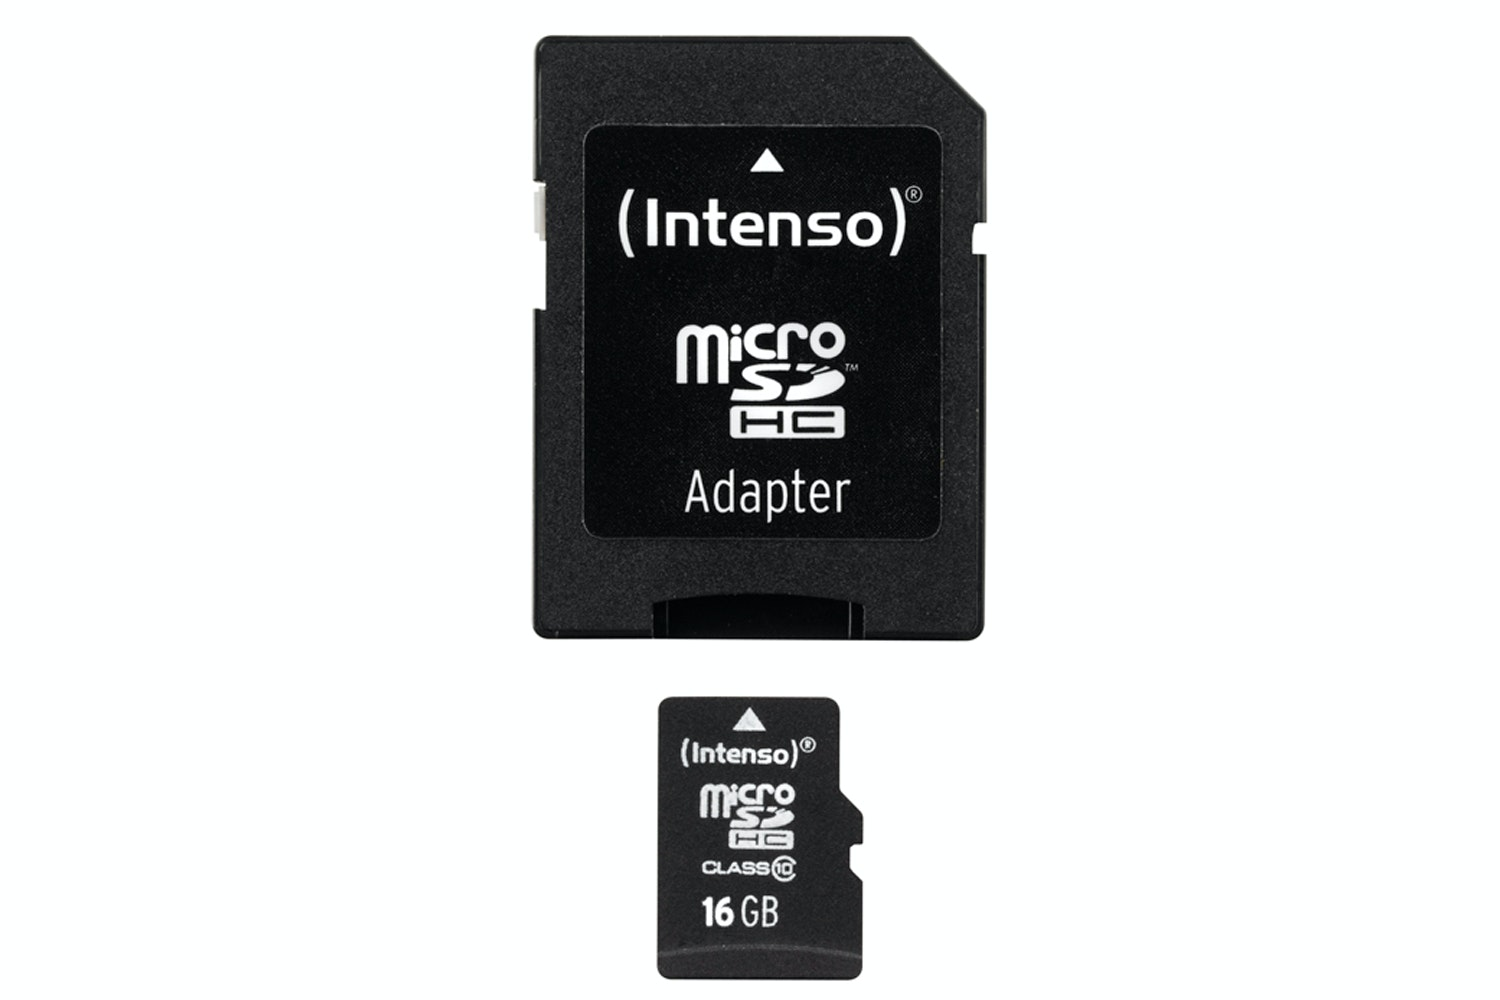 Intenso 16GB Micro SD Card and Adapter